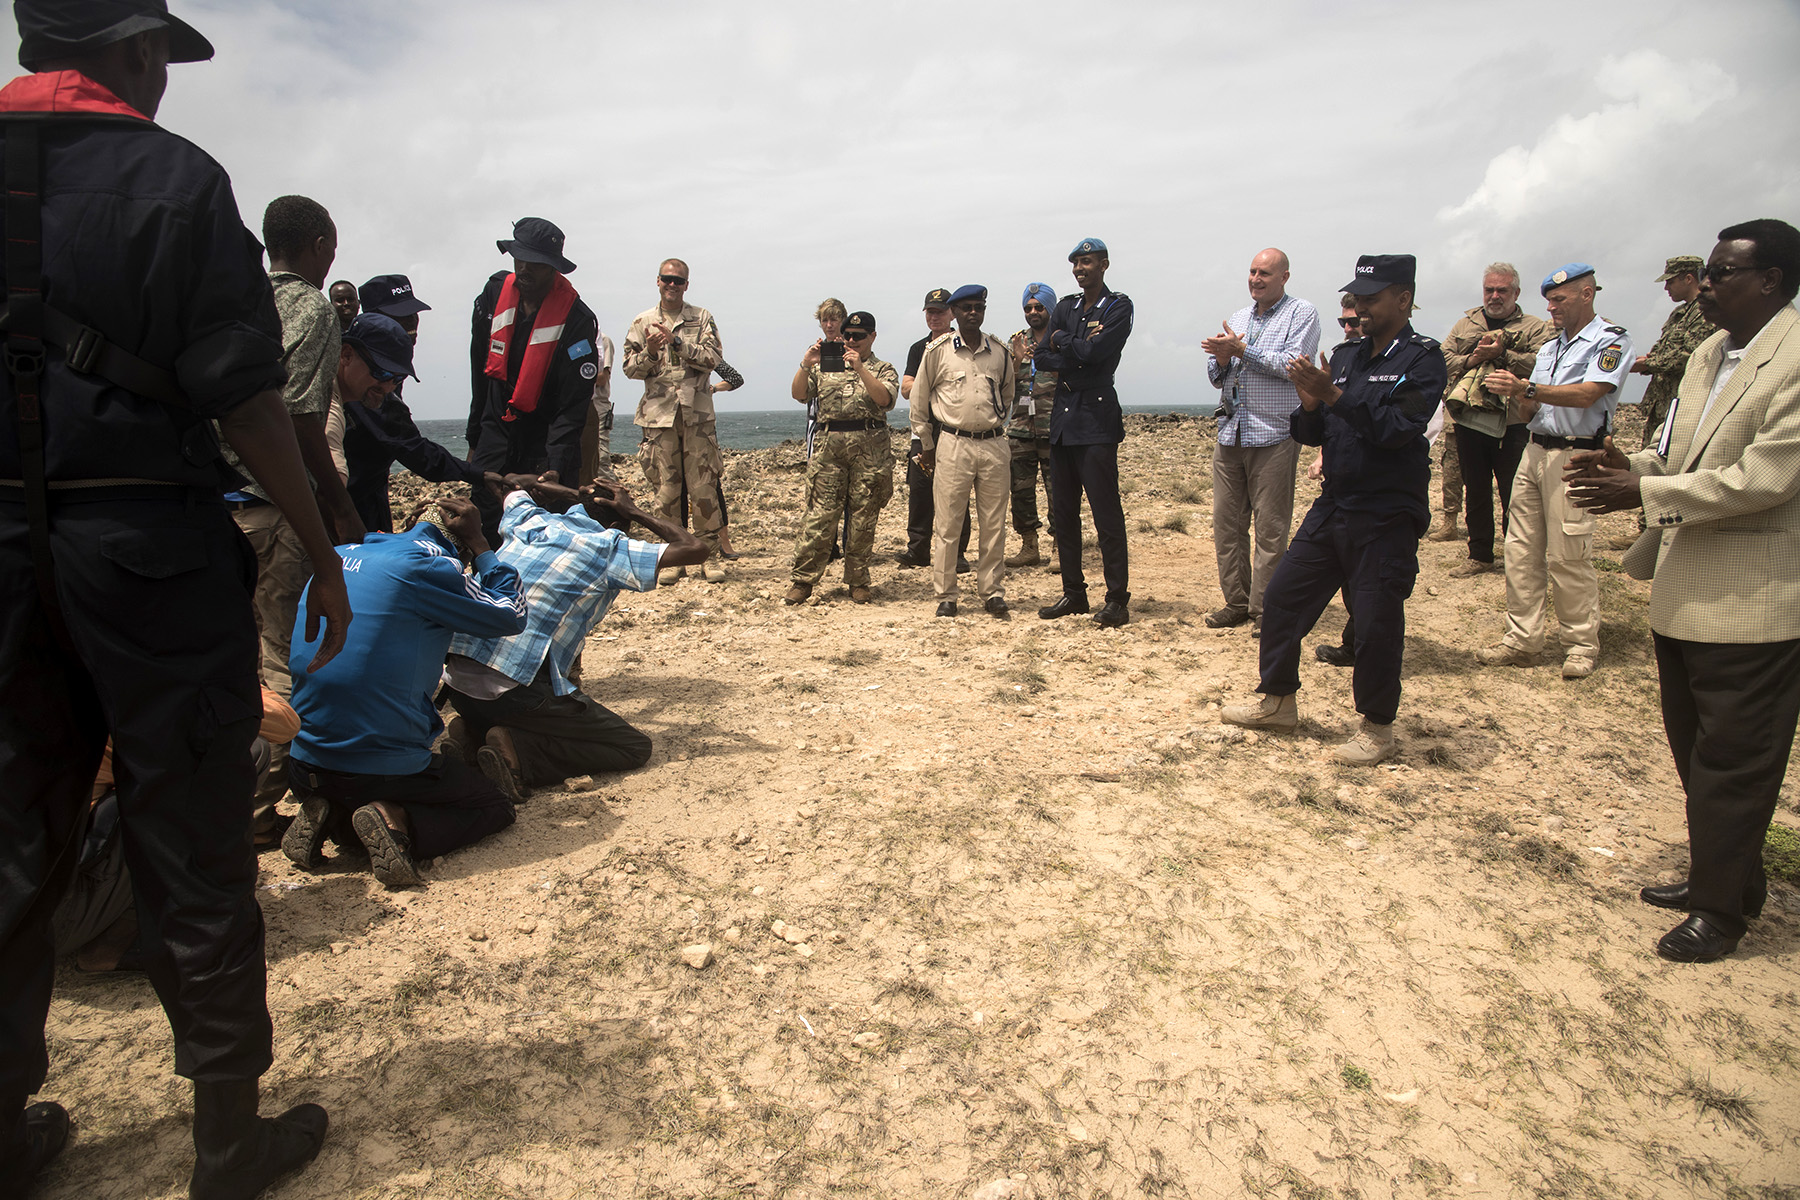 MOGADISHU, Somalia- An exercise conducted by the Somali Police Force Maritime Police Unit brings a mock captured crew to the exercise attendants in order to demonstrate the unit's capabilities with new training vessels, Aug. 25, 2016, in Mogadishu, Somalia.  Representatives from approximately seven countries working to improve security and stability in Somalia attended the exercise demonstration and brief from the United Nations Office on Drugs and Crime mentors on maritime and custodial work in Somalia. The UNODC mentors trained the maritime unit to perform interdiction operations around the coast of Somalia with their new vessels. (U.S. Air Force photo by Staff Sgt. Tiffany DeNault)